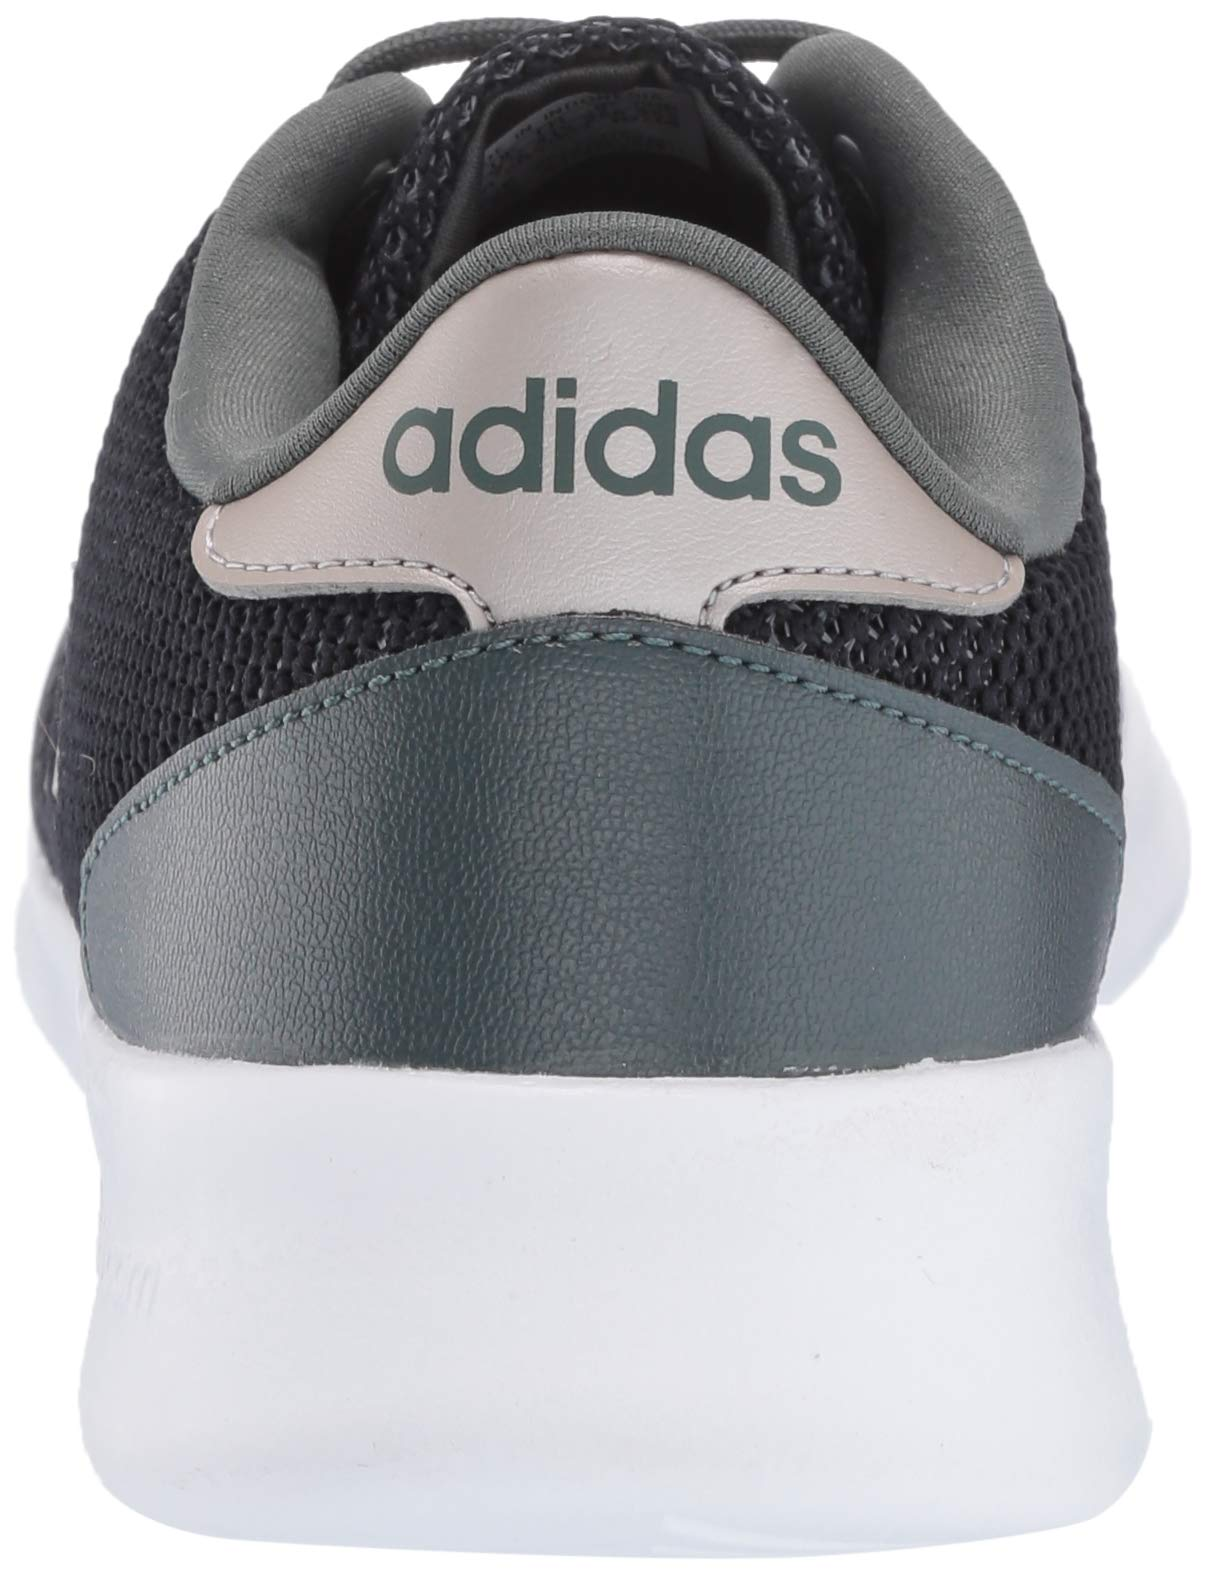 adidas Women's Cloudfoam QT Racer, Legend Ivy/Platino Metallic/Black 5 M US by adidas (Image #2)